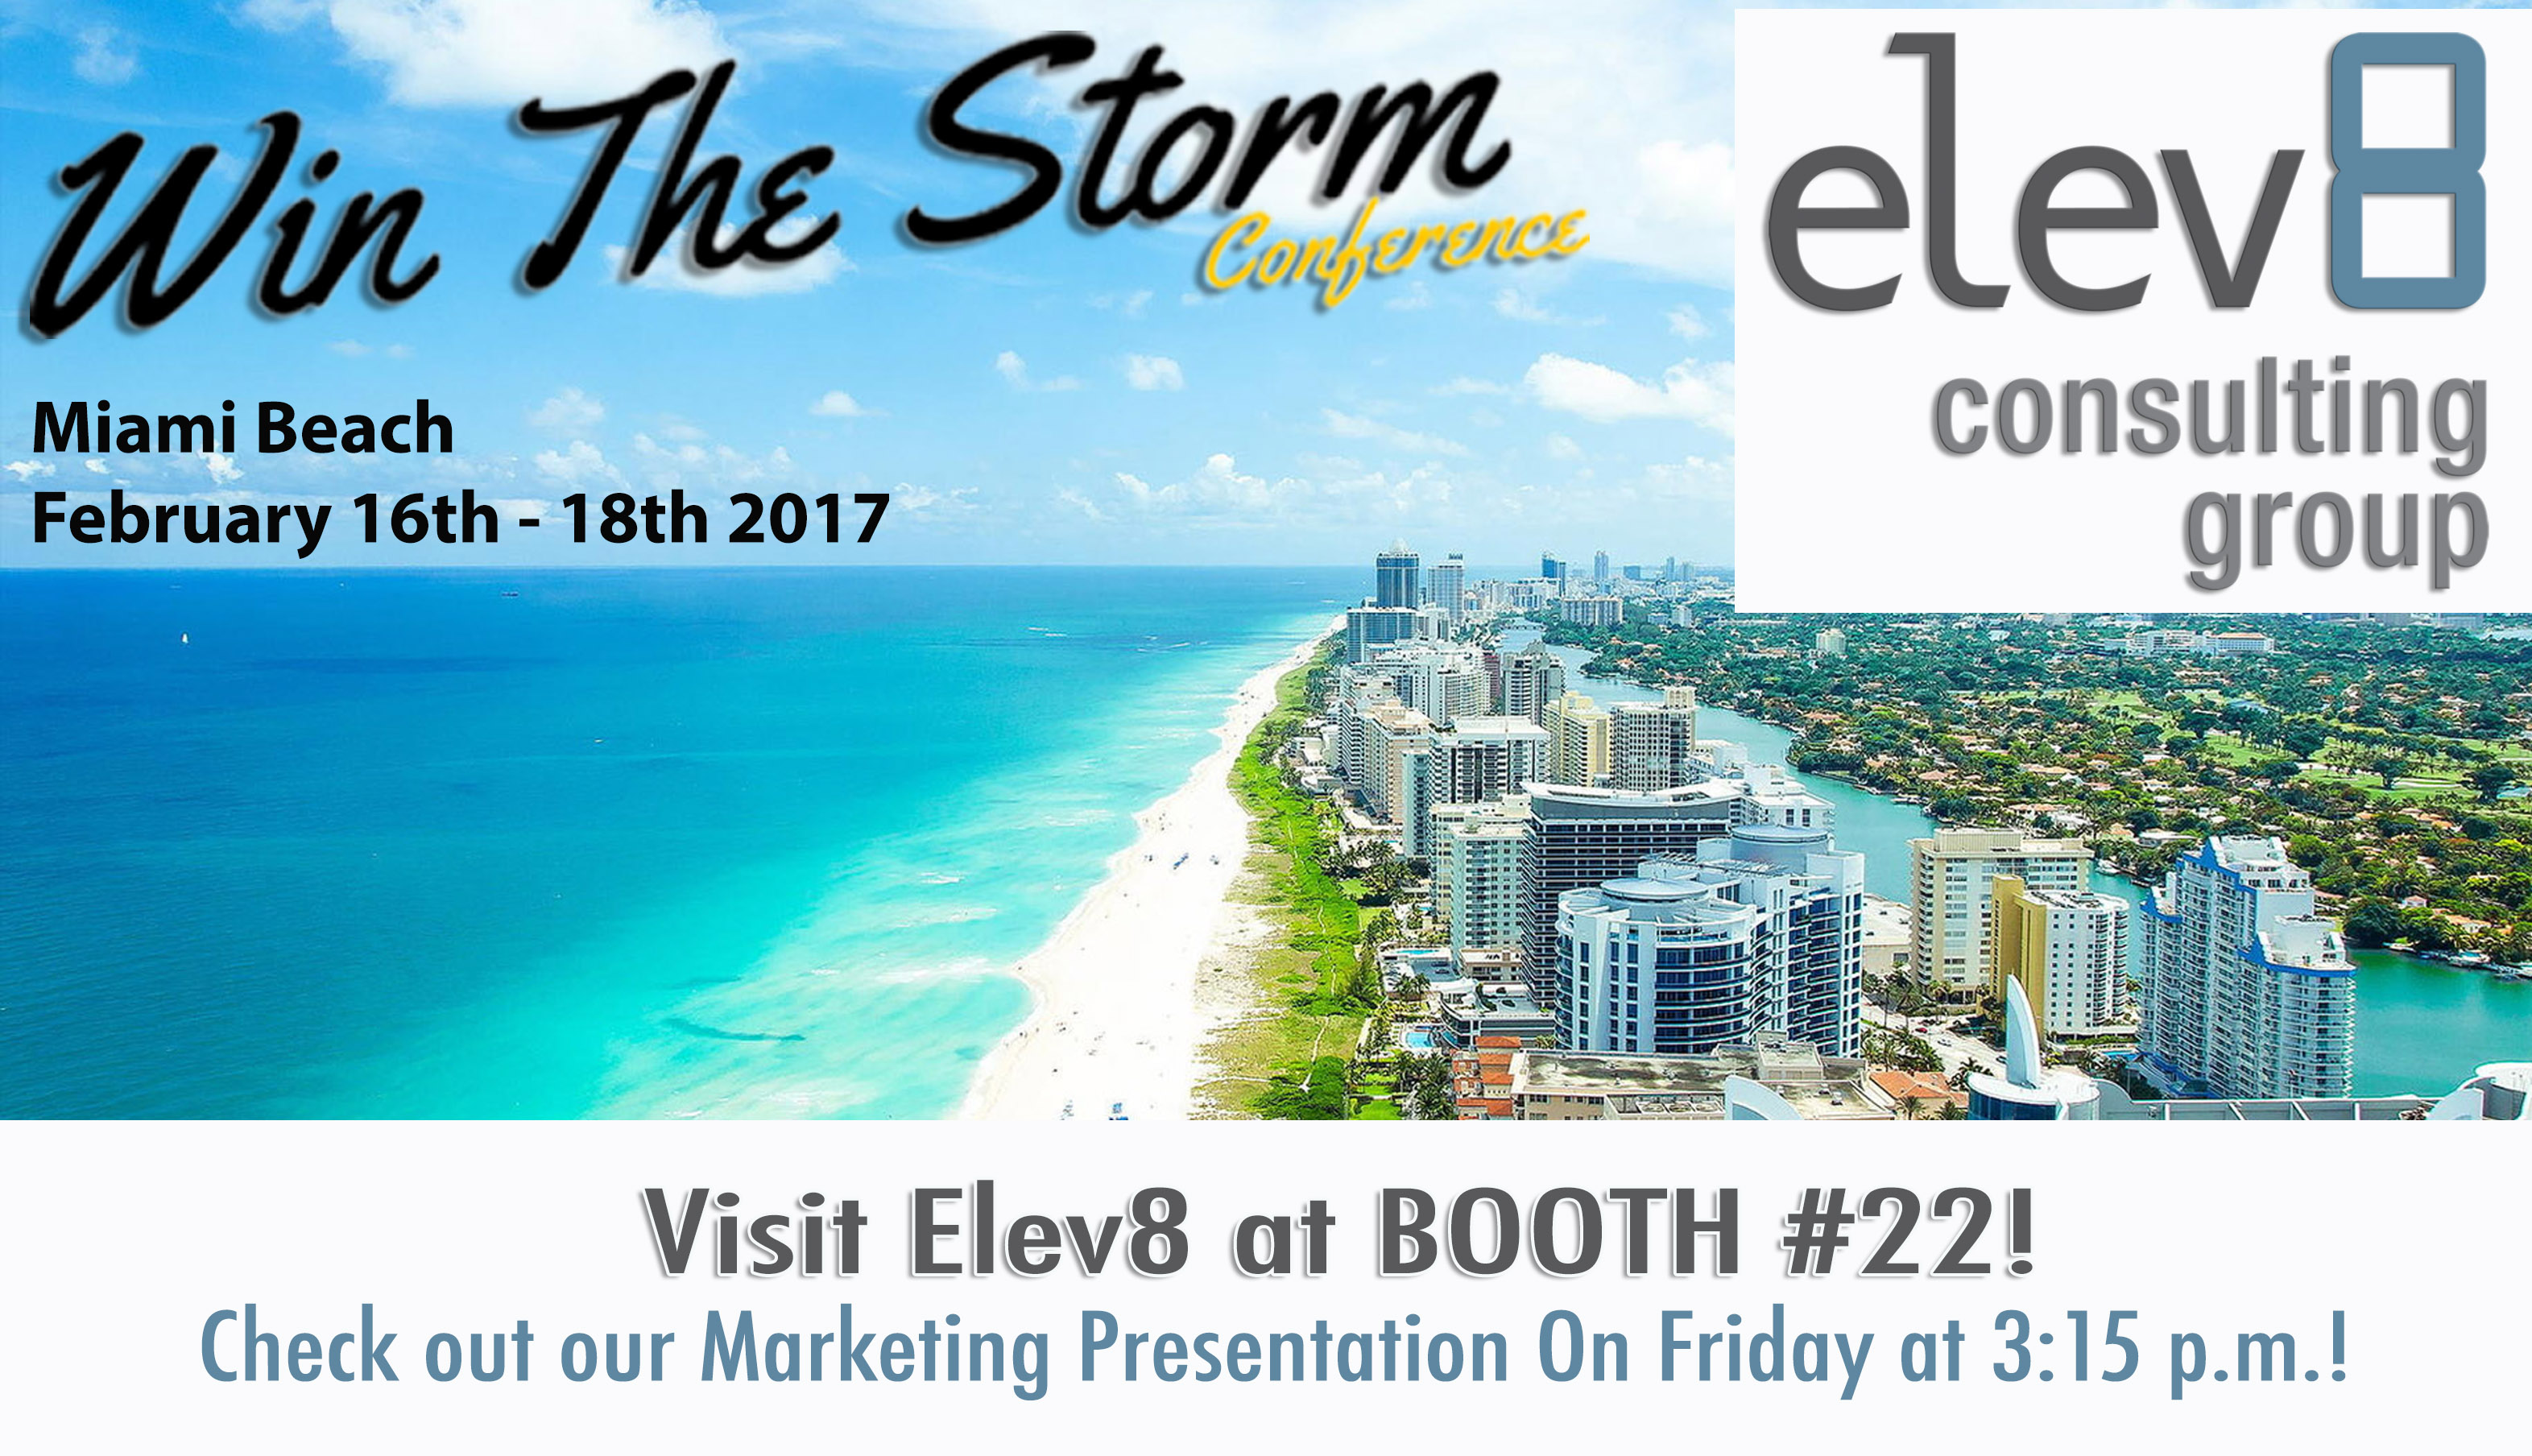 Elev8 Consulting Group Win The Storm Conference & Trade Show Expo